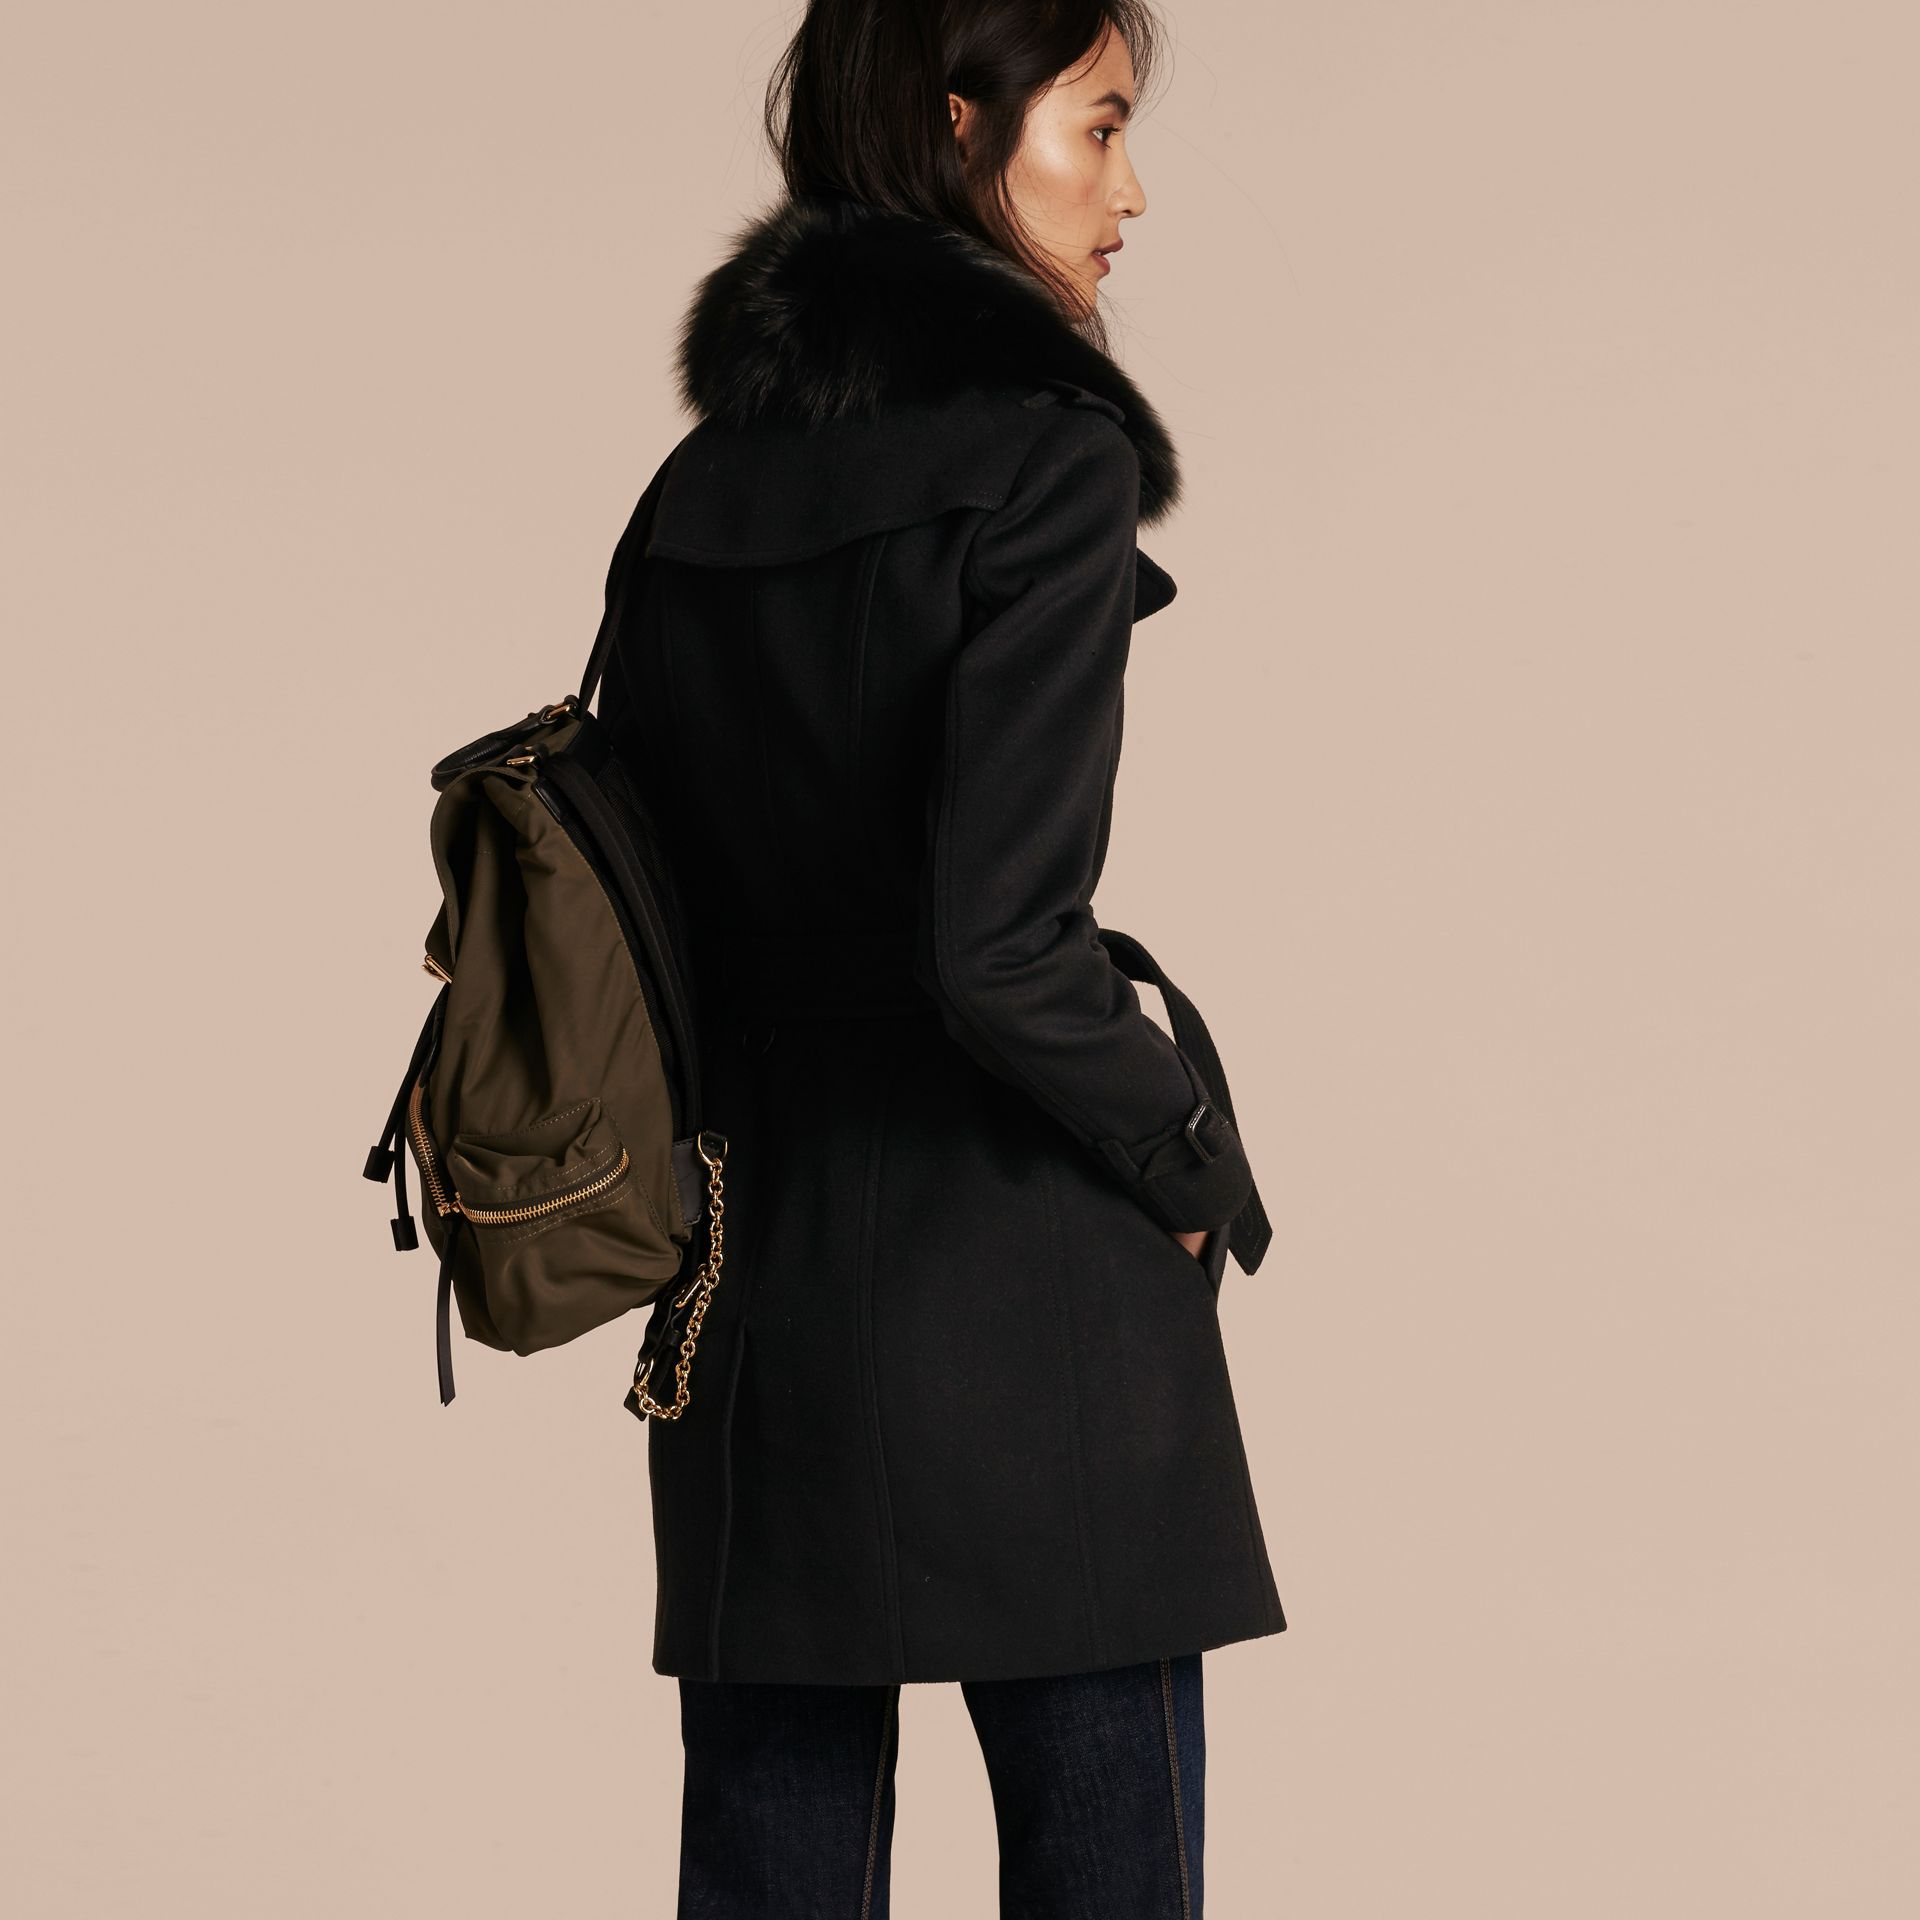 Wool Cashmere Trench Coat with Fur Collar in Black - Women | Burberry - gallery image 3